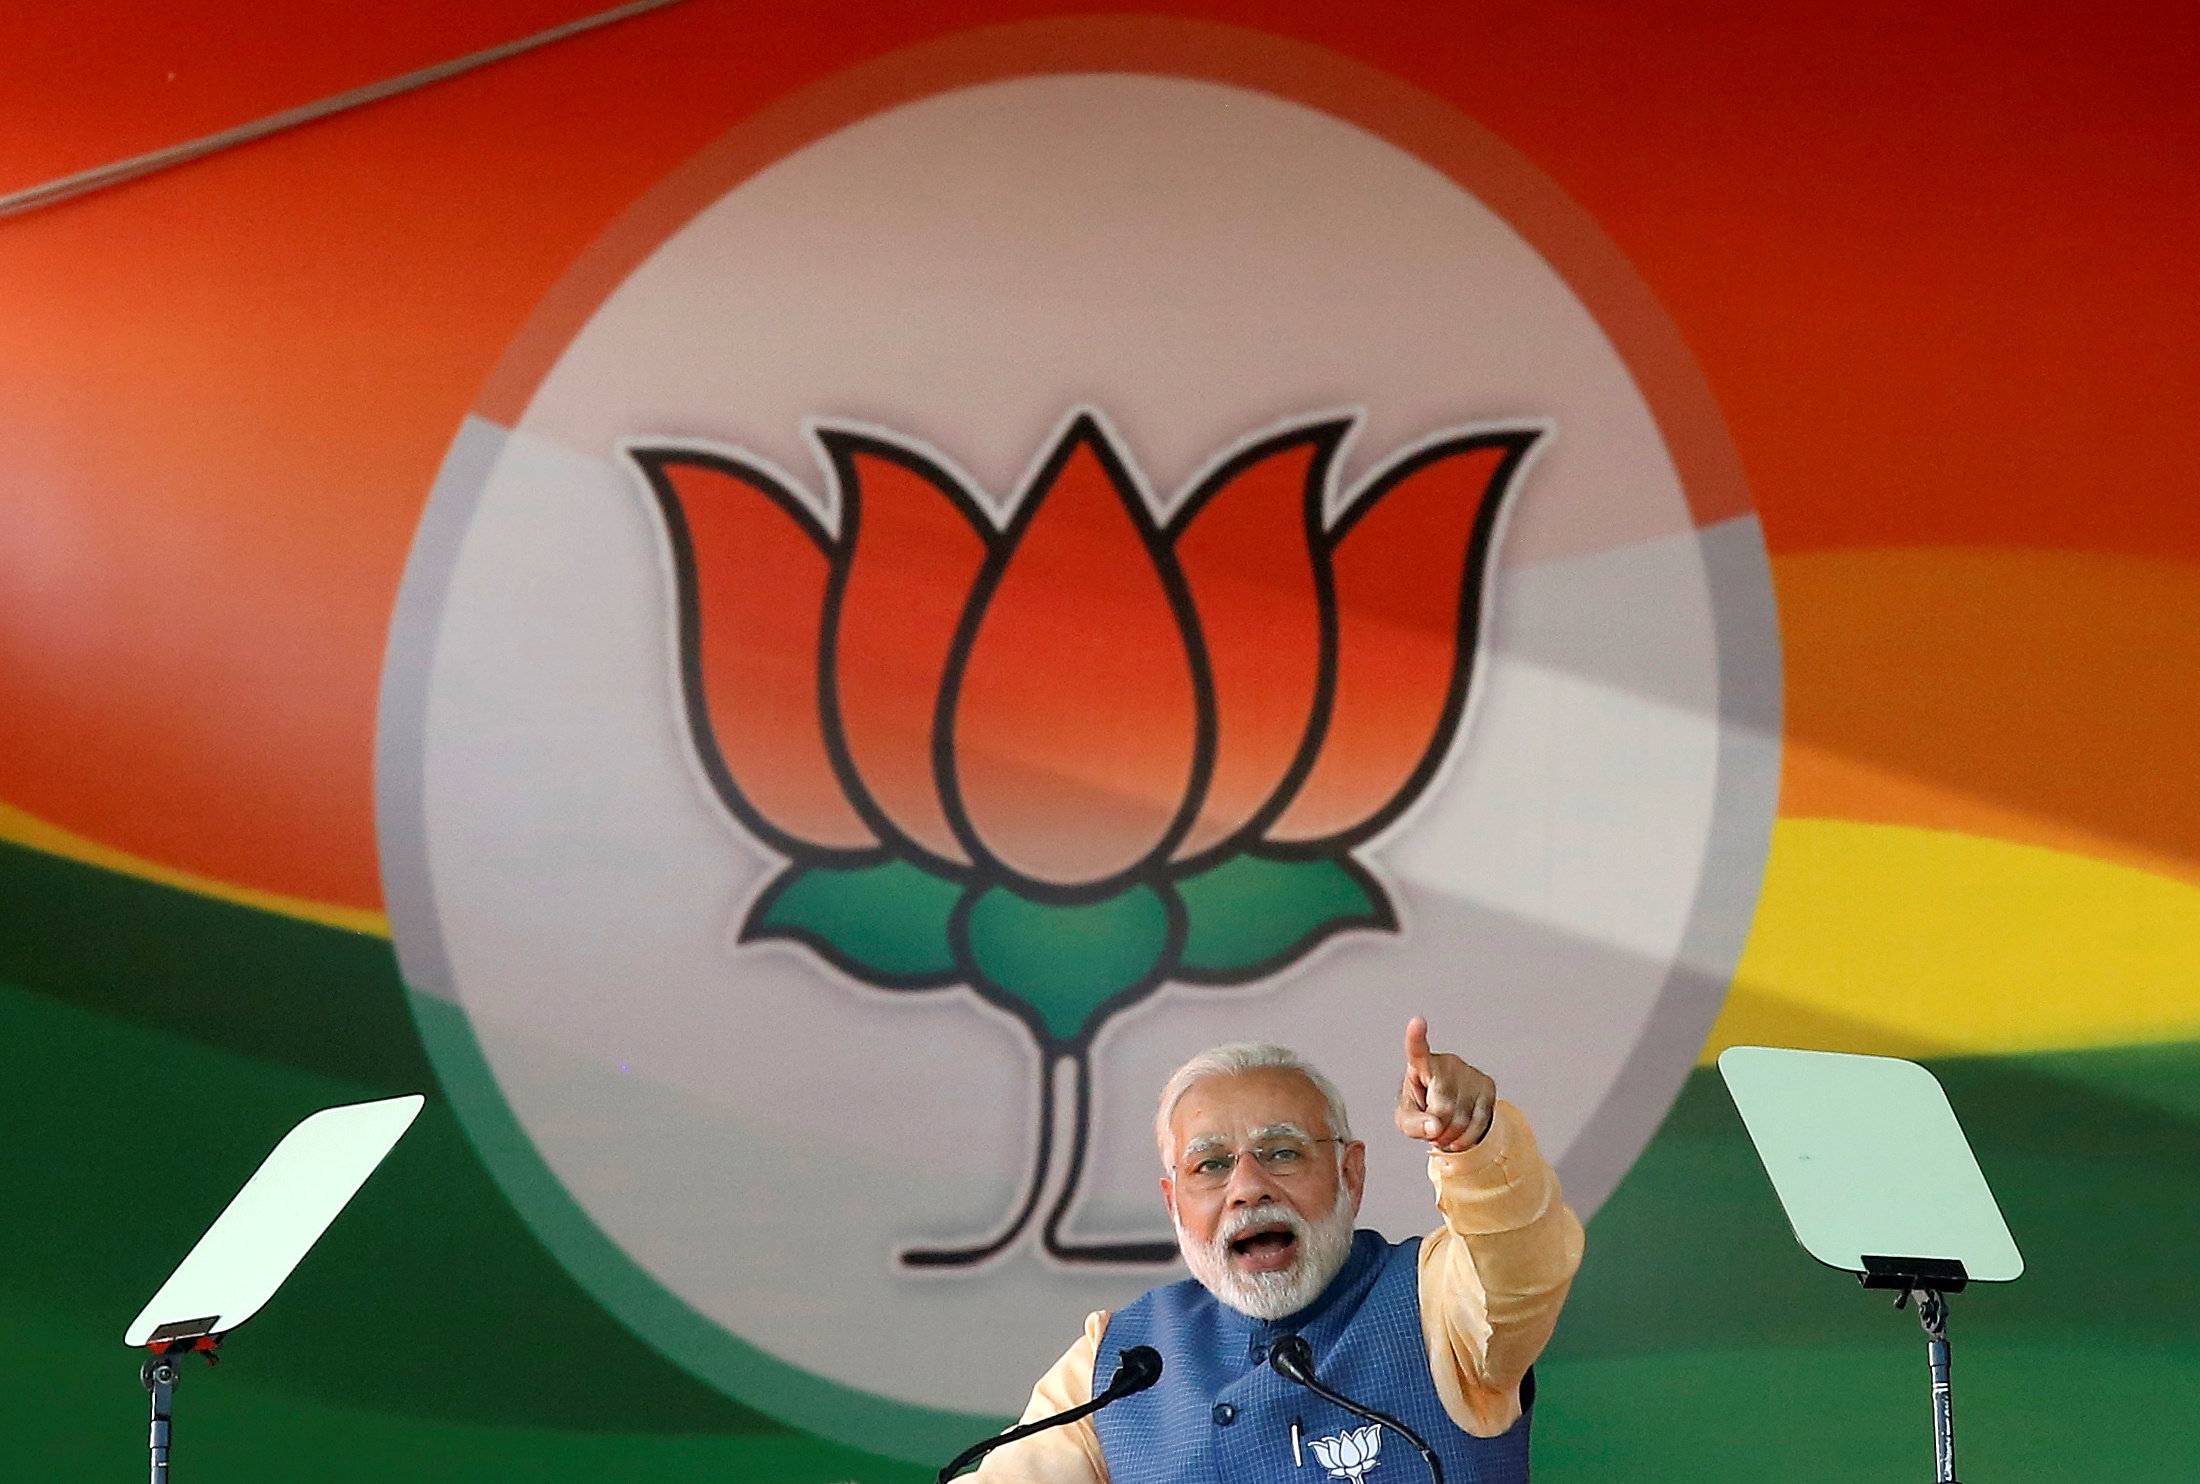 FILE PHOTO: India's Prime Minister Narendra Modi addresses an election campaign rally ahead of the Karnataka state assembly elections in Bengaluru, India, February 4, 2018. REUTERS